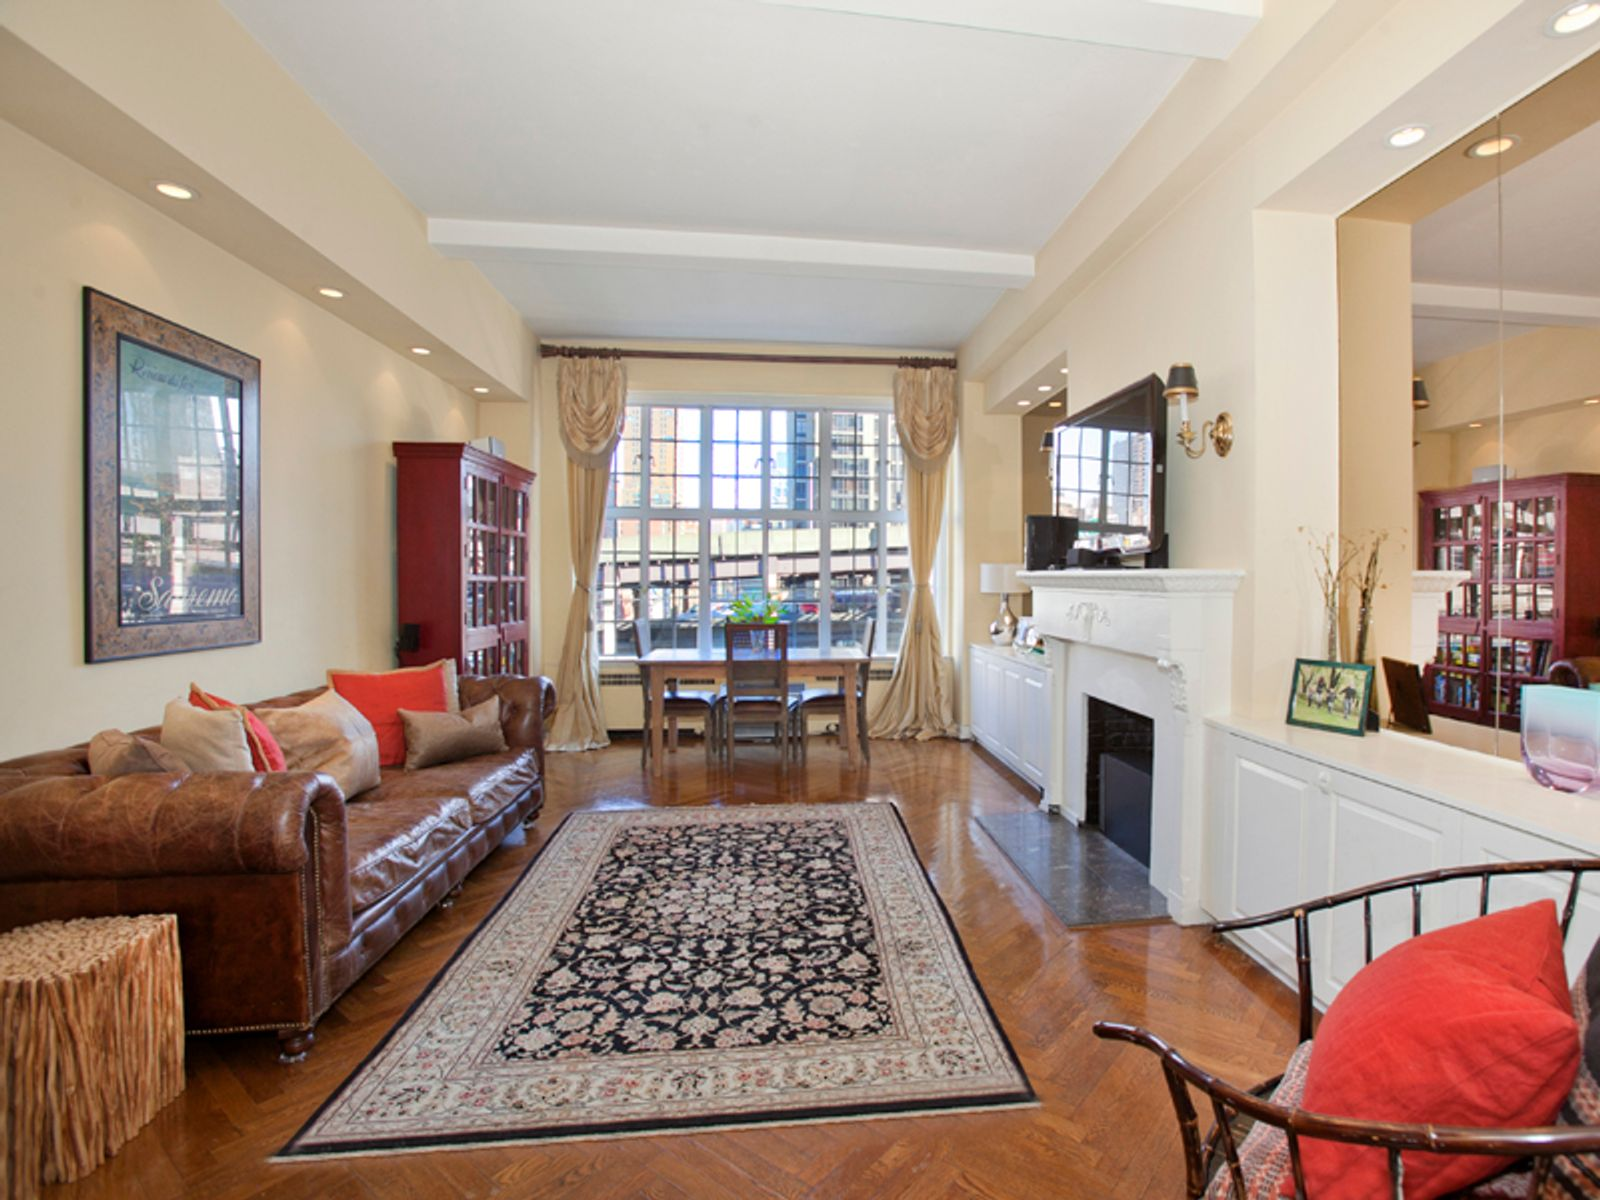 Dramatic Sutton Place 2 Bedroom, New York NY Cooperative - New York City Real Estate